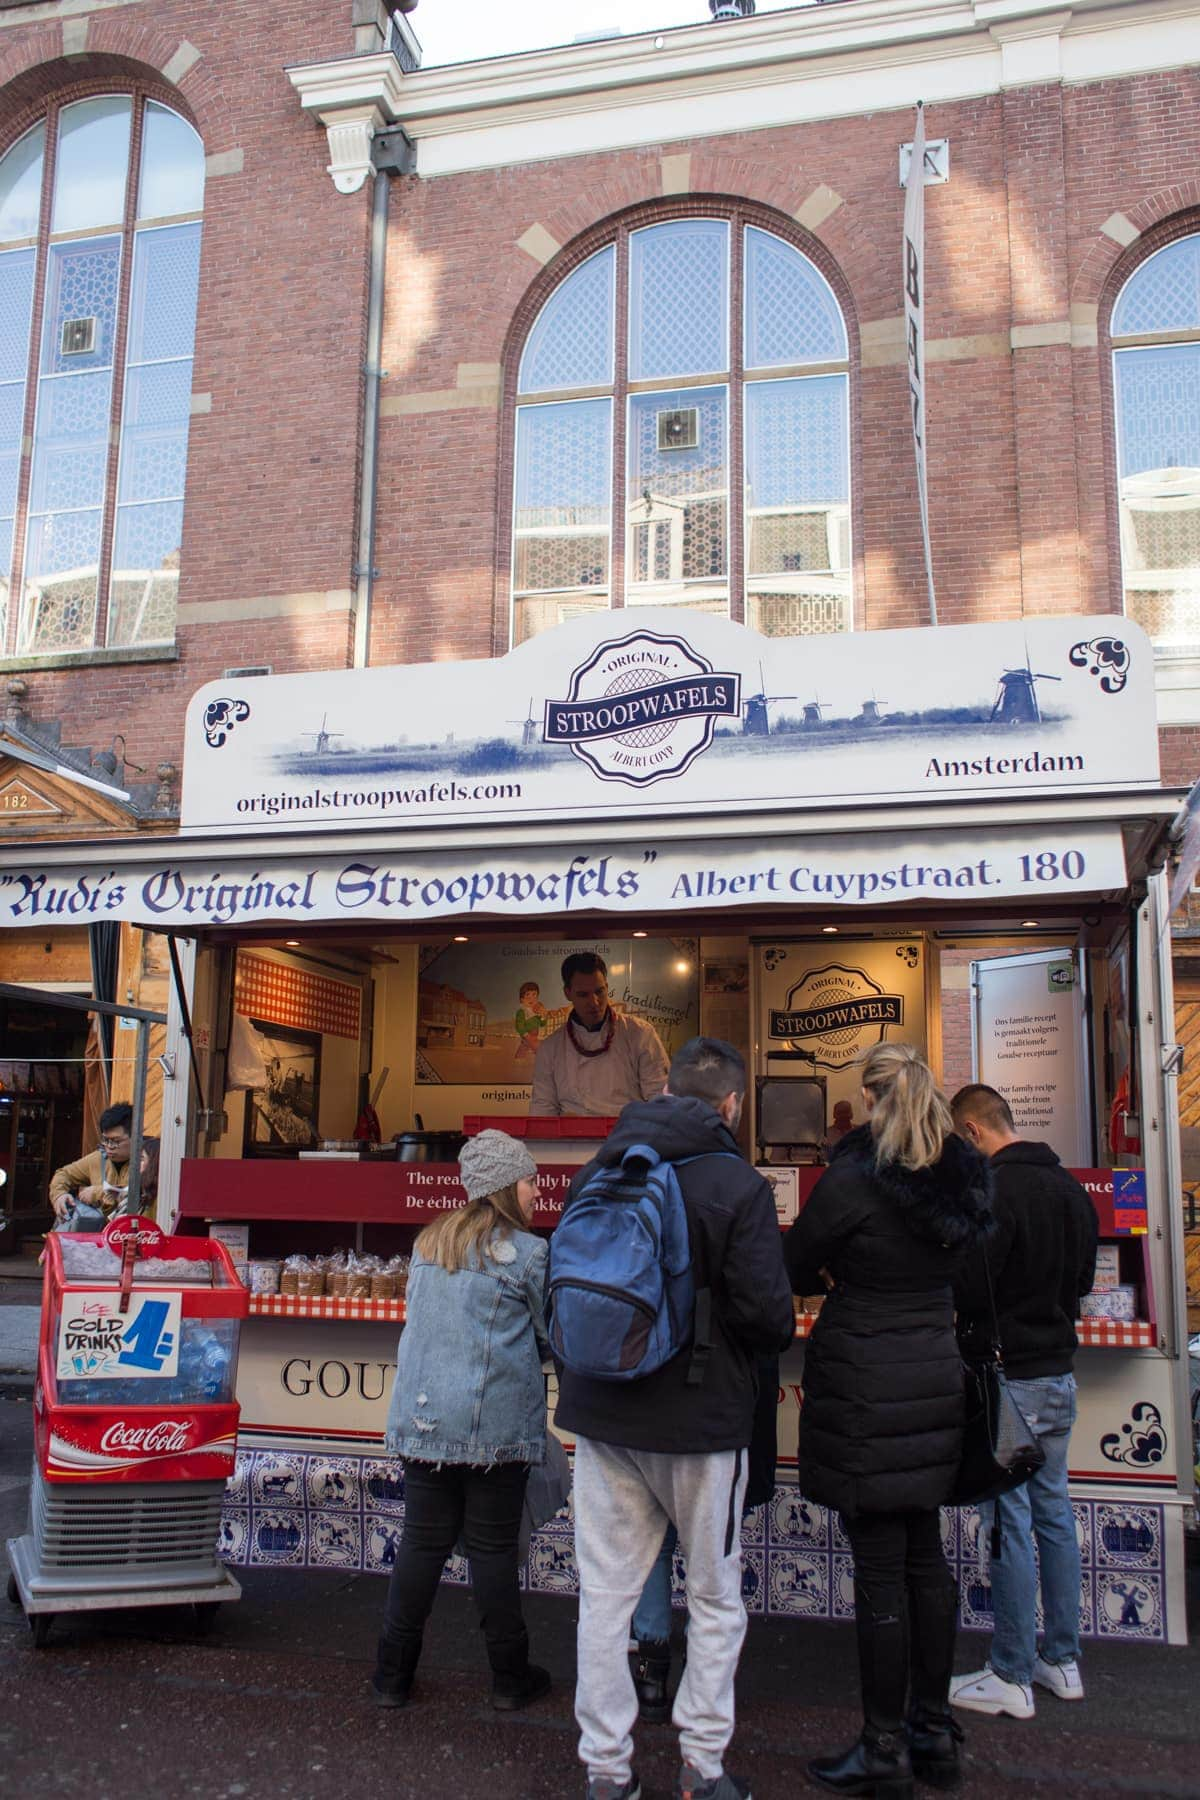 A Stroop waffle Stand